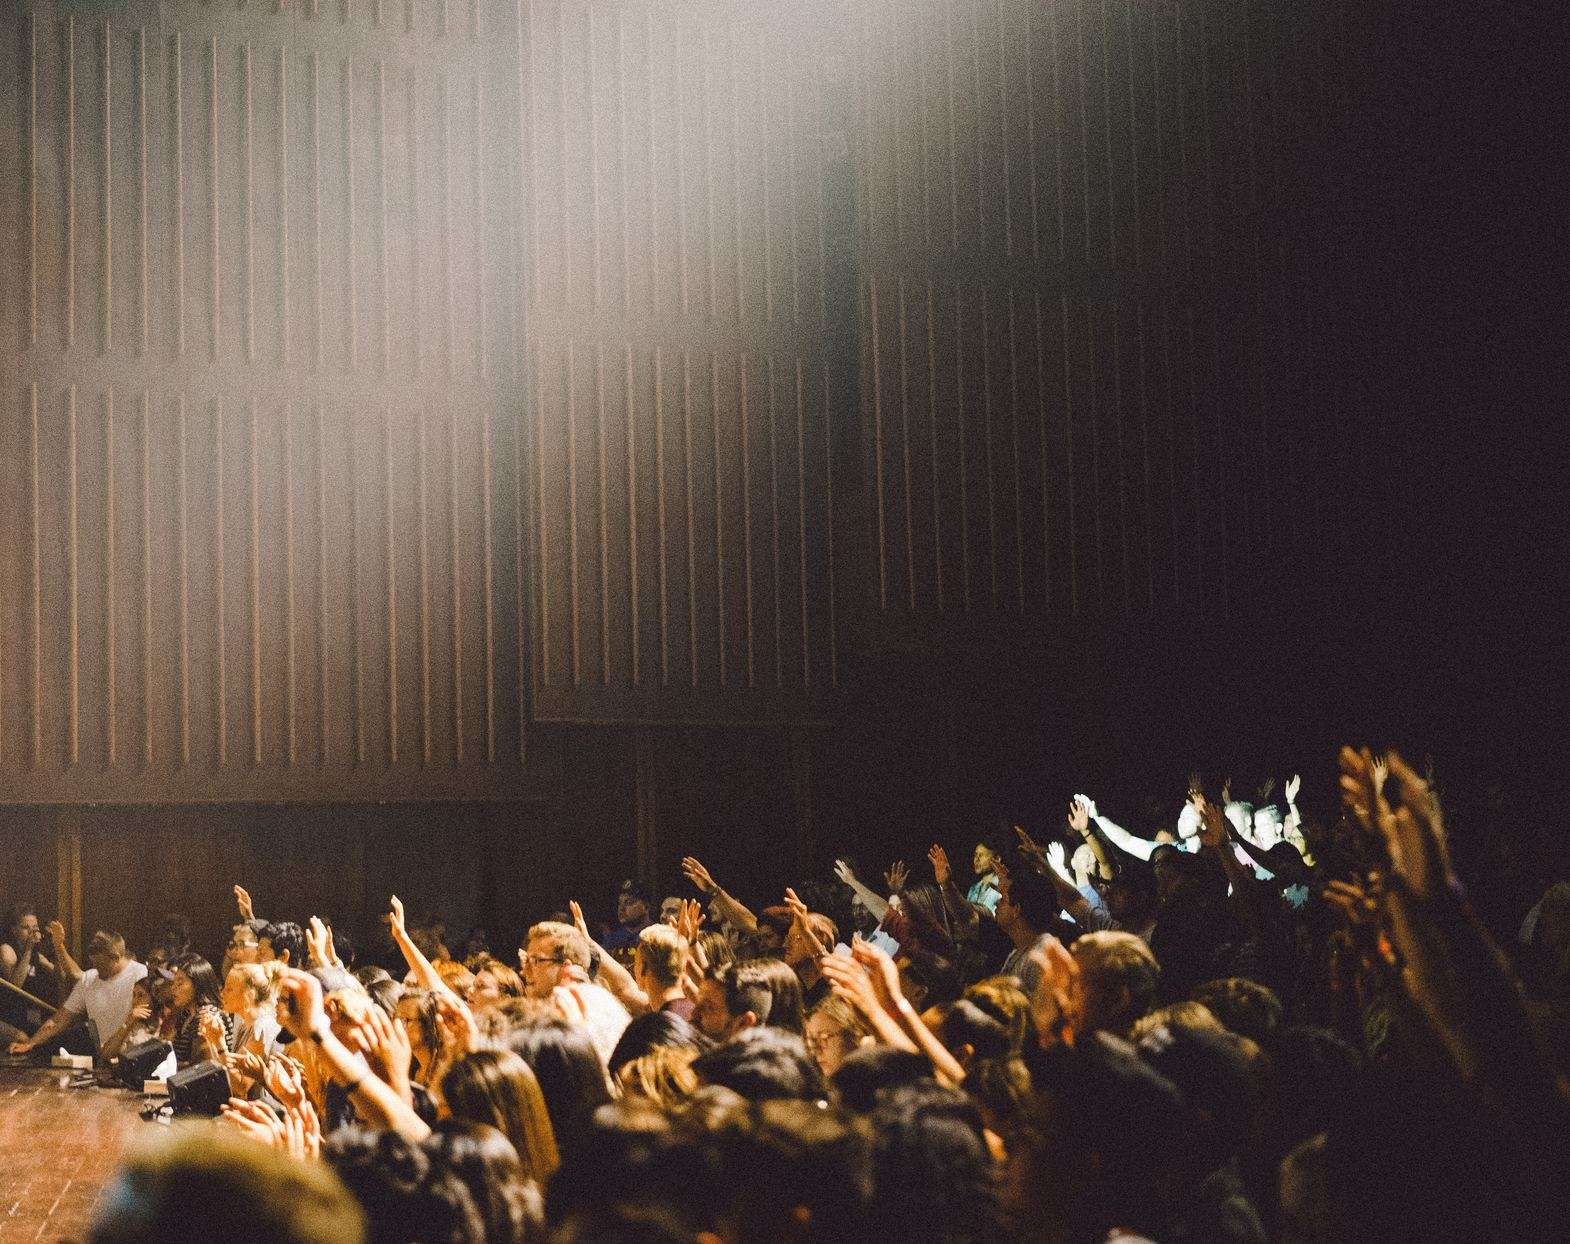 Photograph of a crowd of people in front of a stage.  Some with hands in the air.